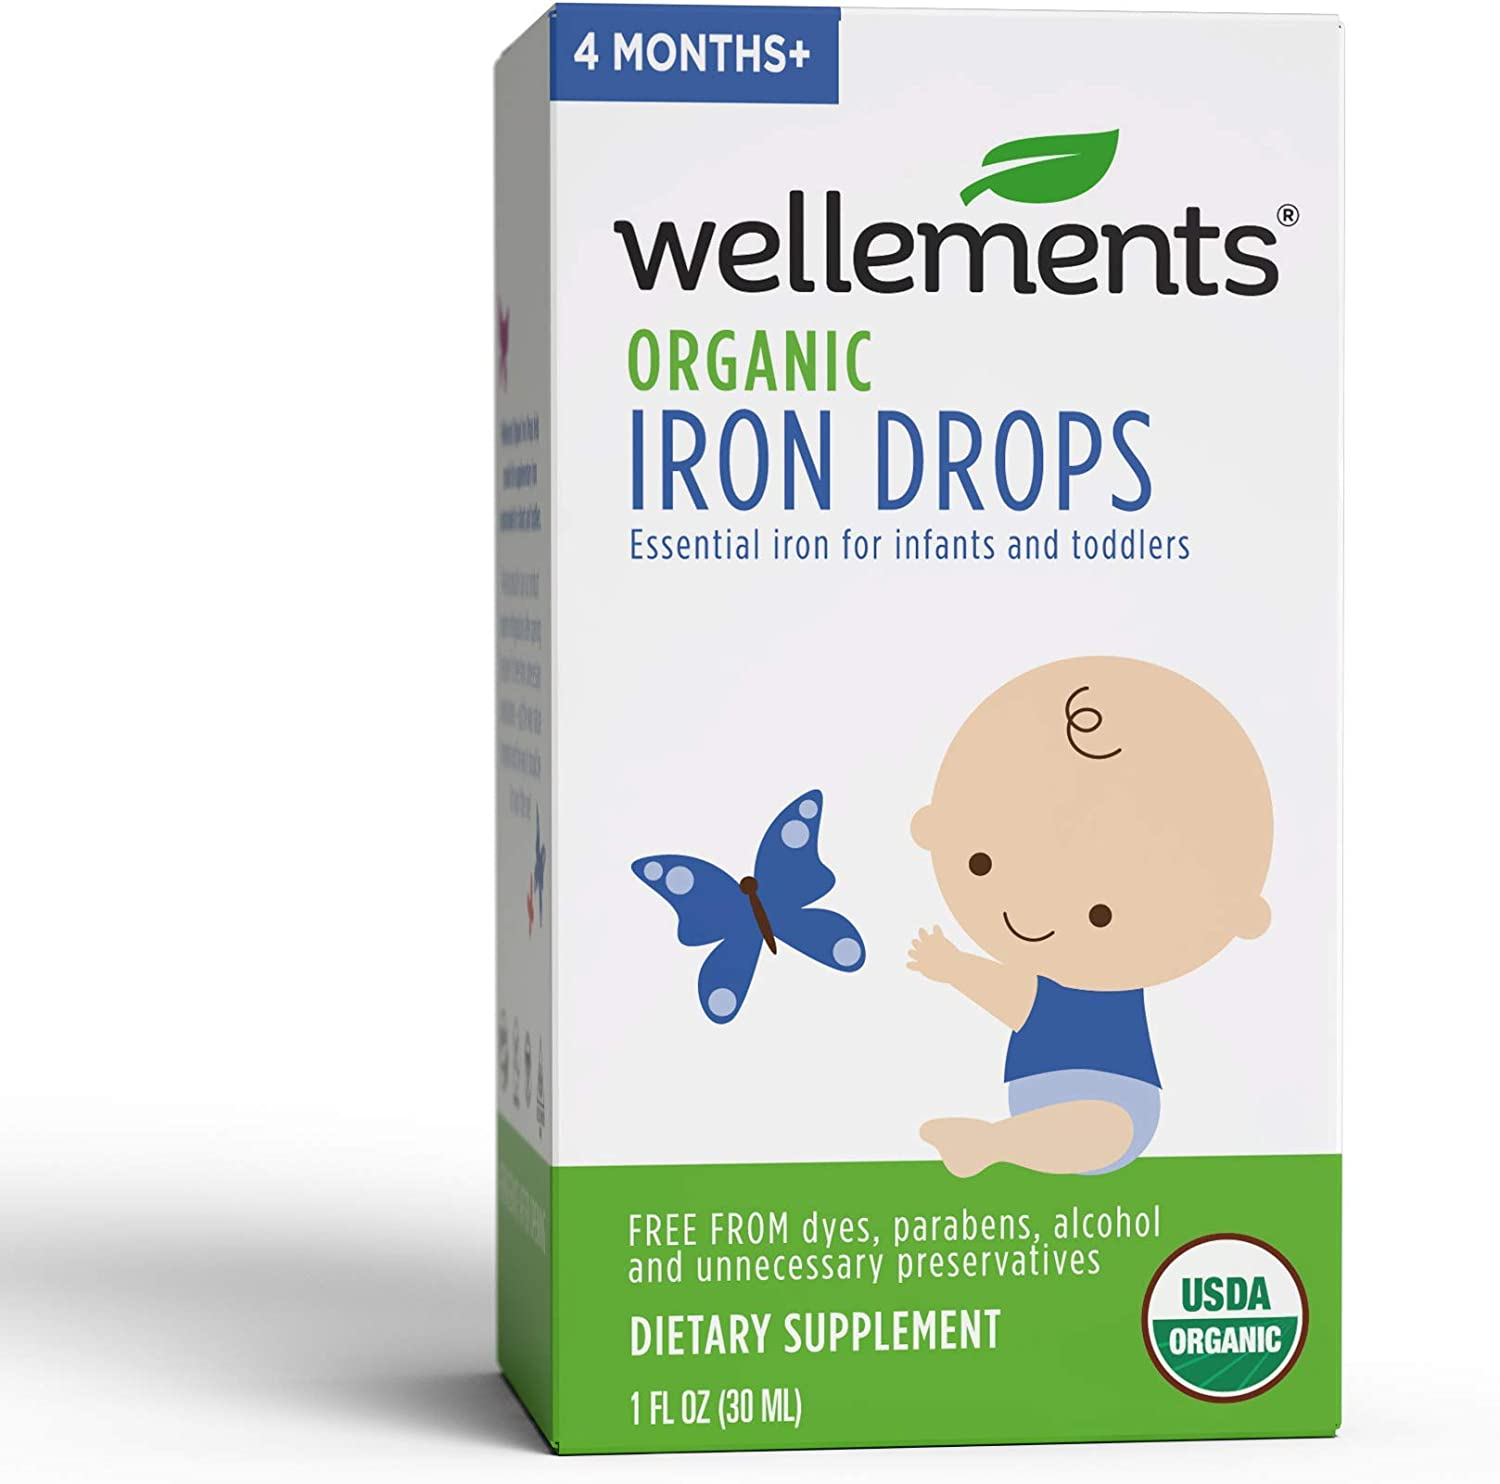 Wellements Organic Iron Drops